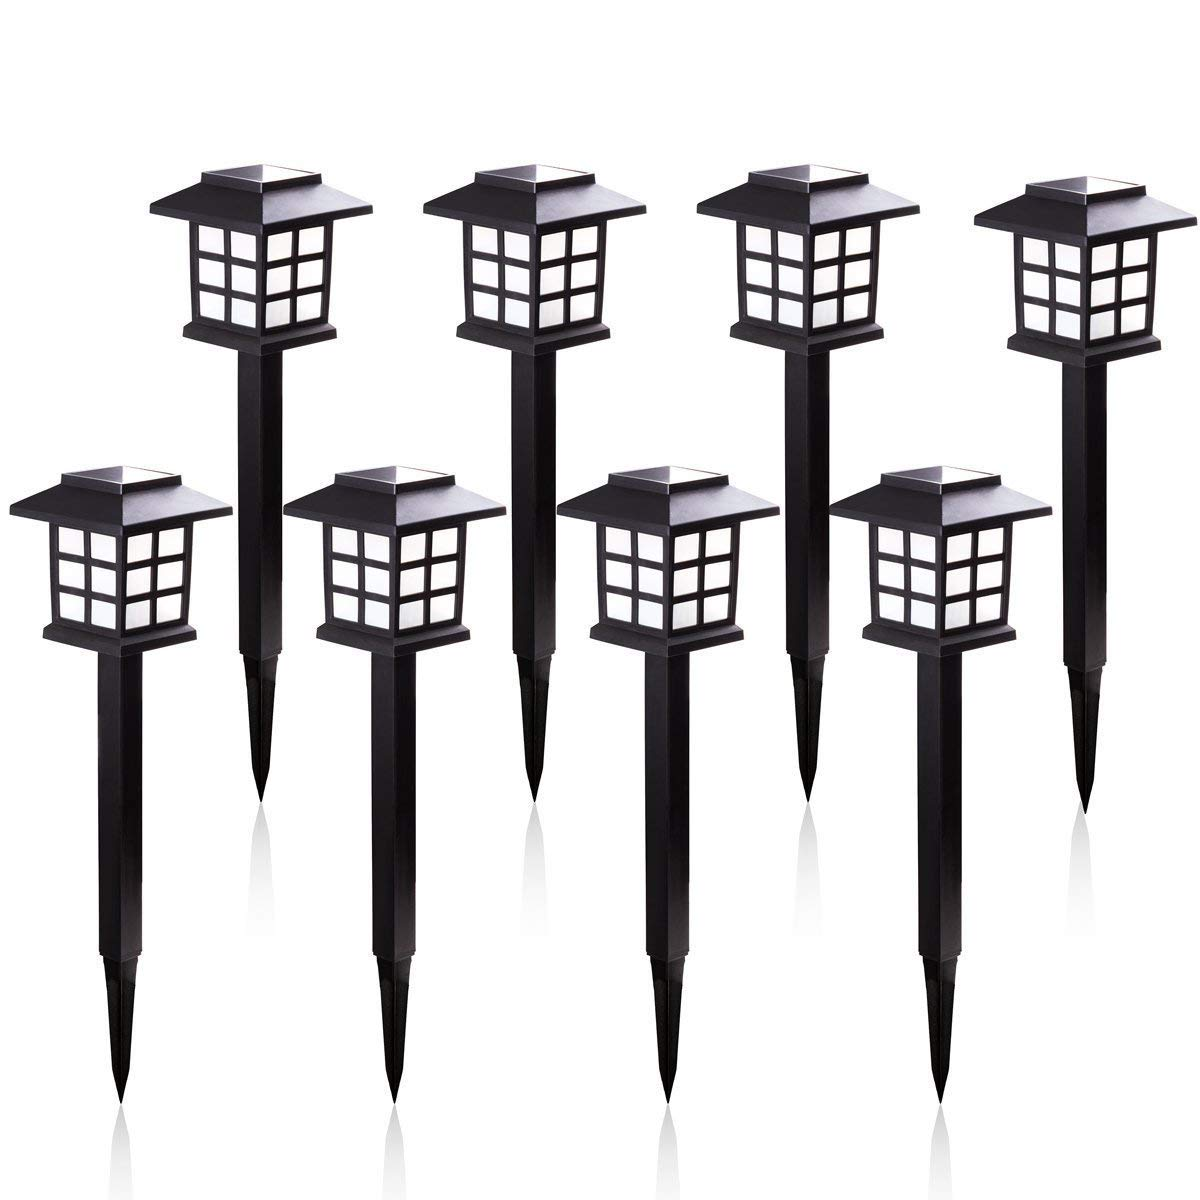 KODOO 8Pack Solar Pathway Lights Outdoor, Outdoor Garden Lights, Solar Pathway Lights, Outdoor Landscape Lighting for Lawn/Patio/Yard/Walkway/Driveway